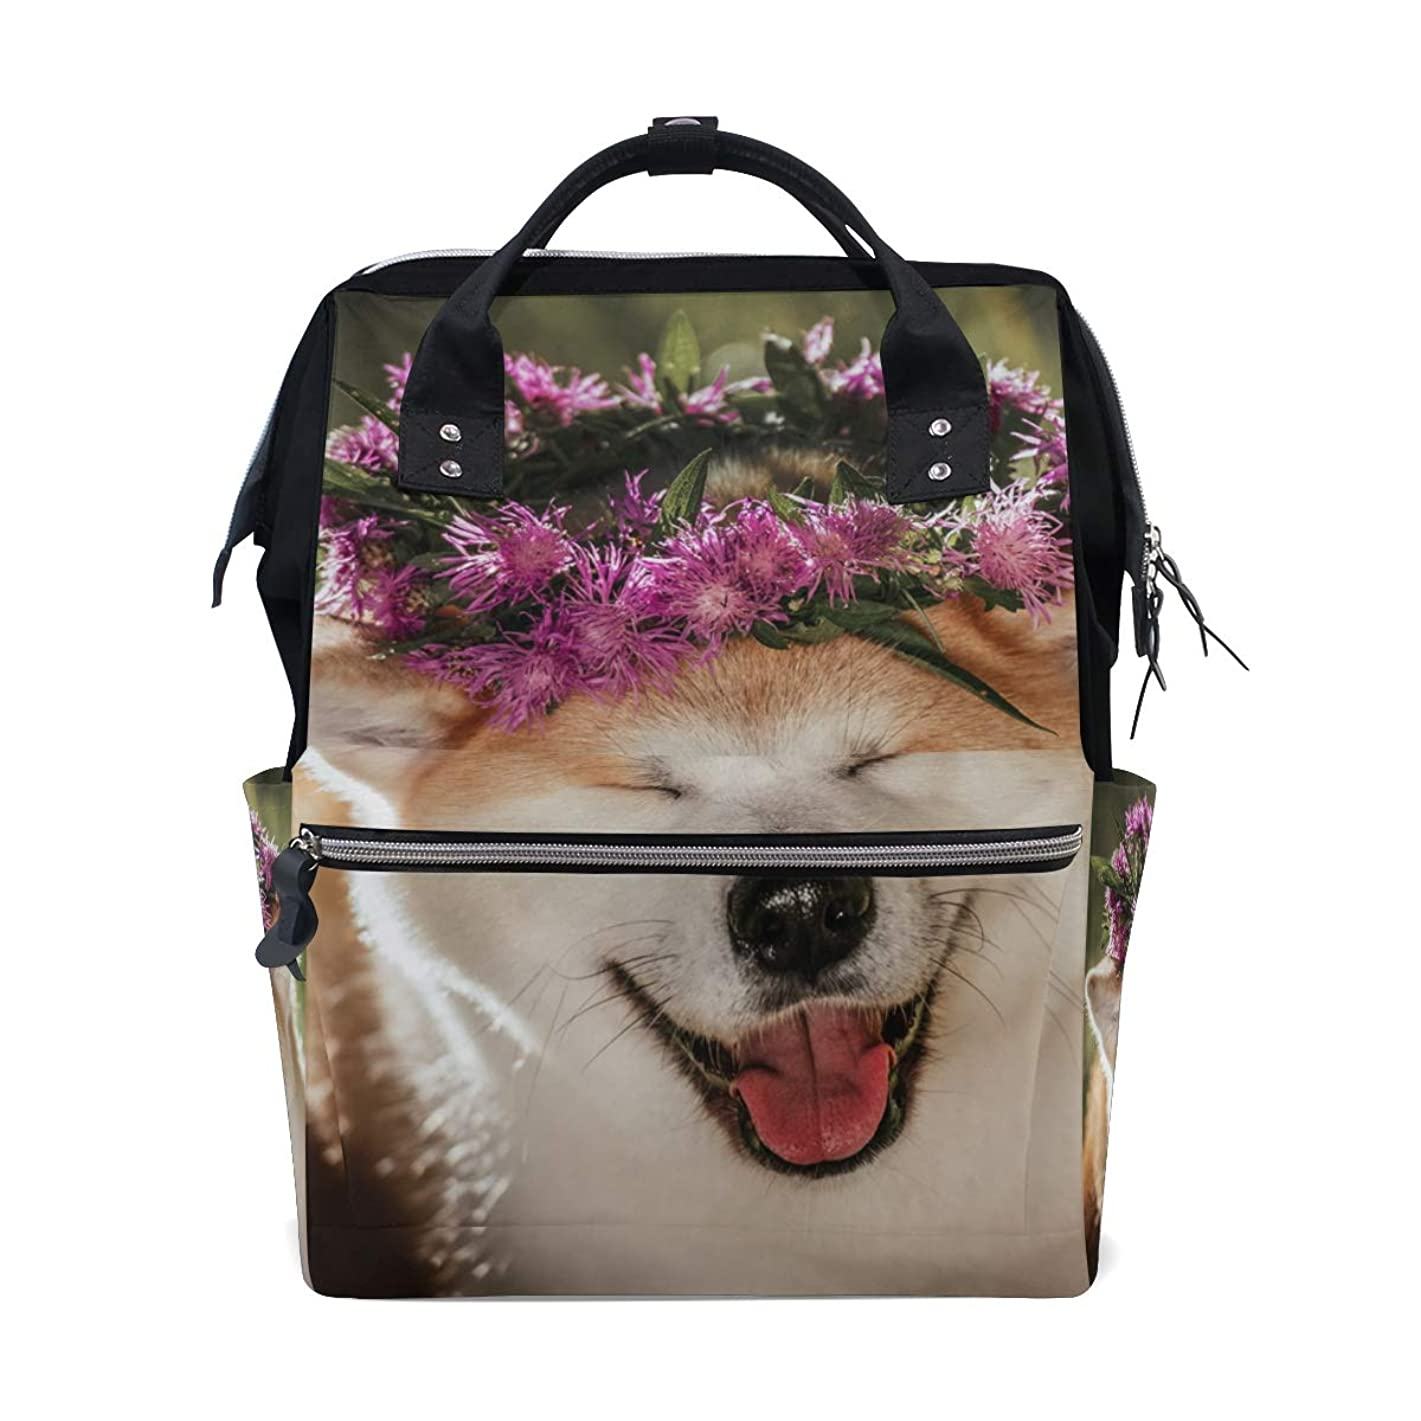 Cute Puppy Dog With Flower School Backpack Large Capacity Mummy Bags Laptop Handbag Casual Travel Rucksack Satchel For Women Men Adult Teen Children